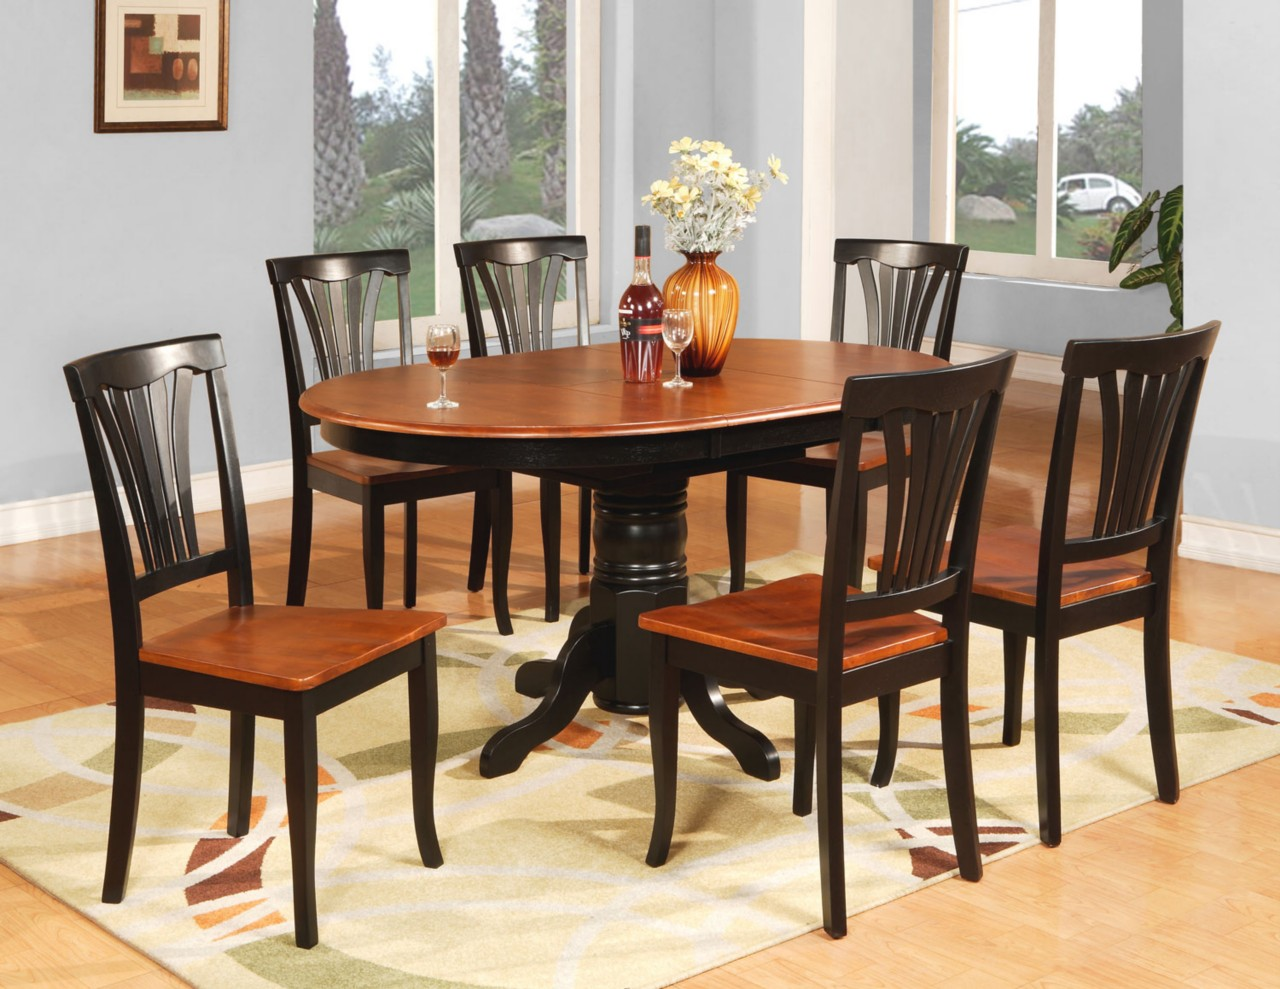 Details about 7 PC OVAL DINETTE KITCHEN DINING ROOM TABLE & 6 CHAIRS